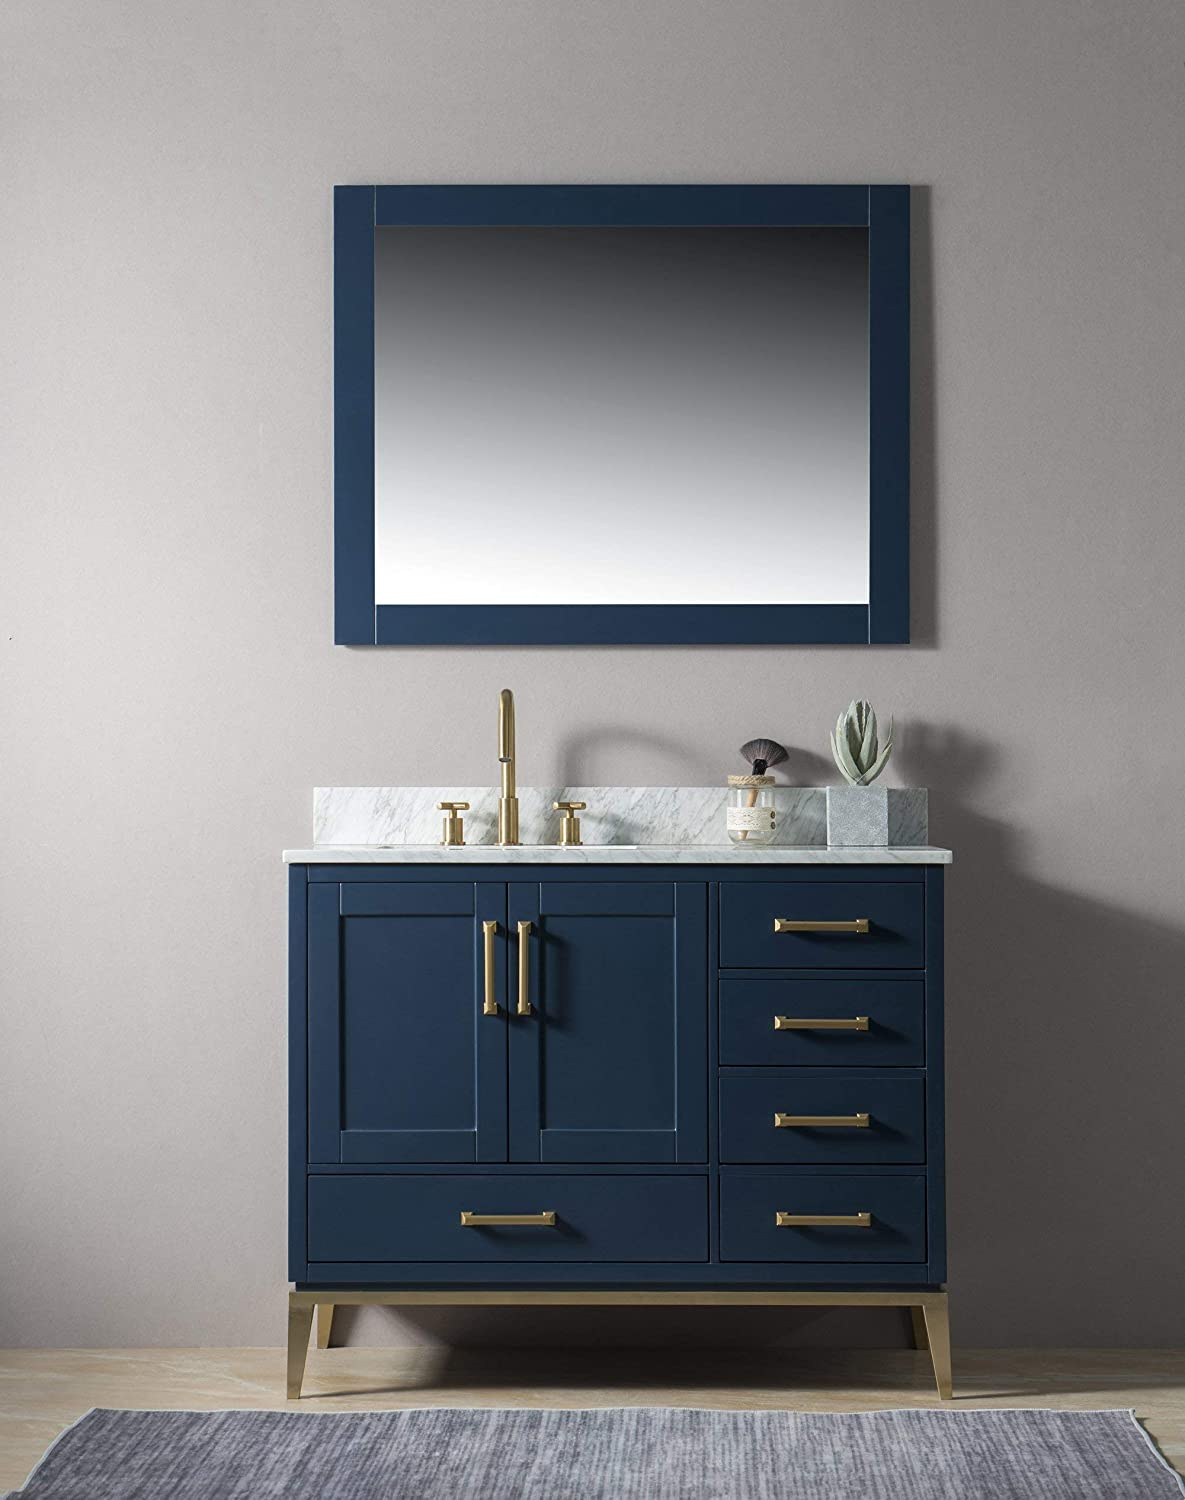 UrbanFurnishing.net – Joy 42-Inch 42 Bathroom Sink Vanity Set with White Italian Carrara Marble Top – Blue